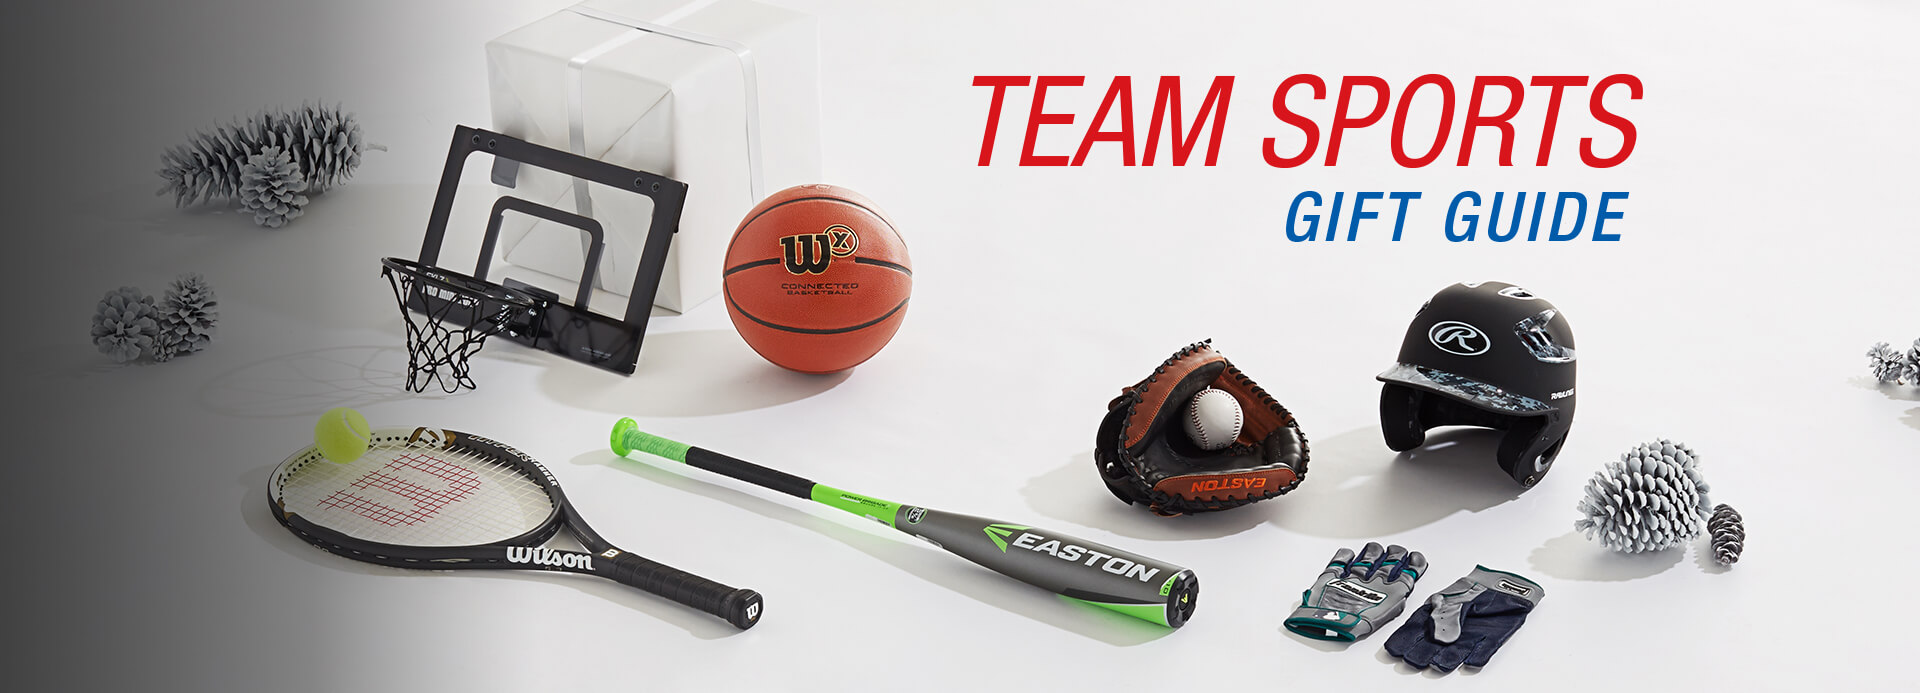 Team Sports Gift Guide